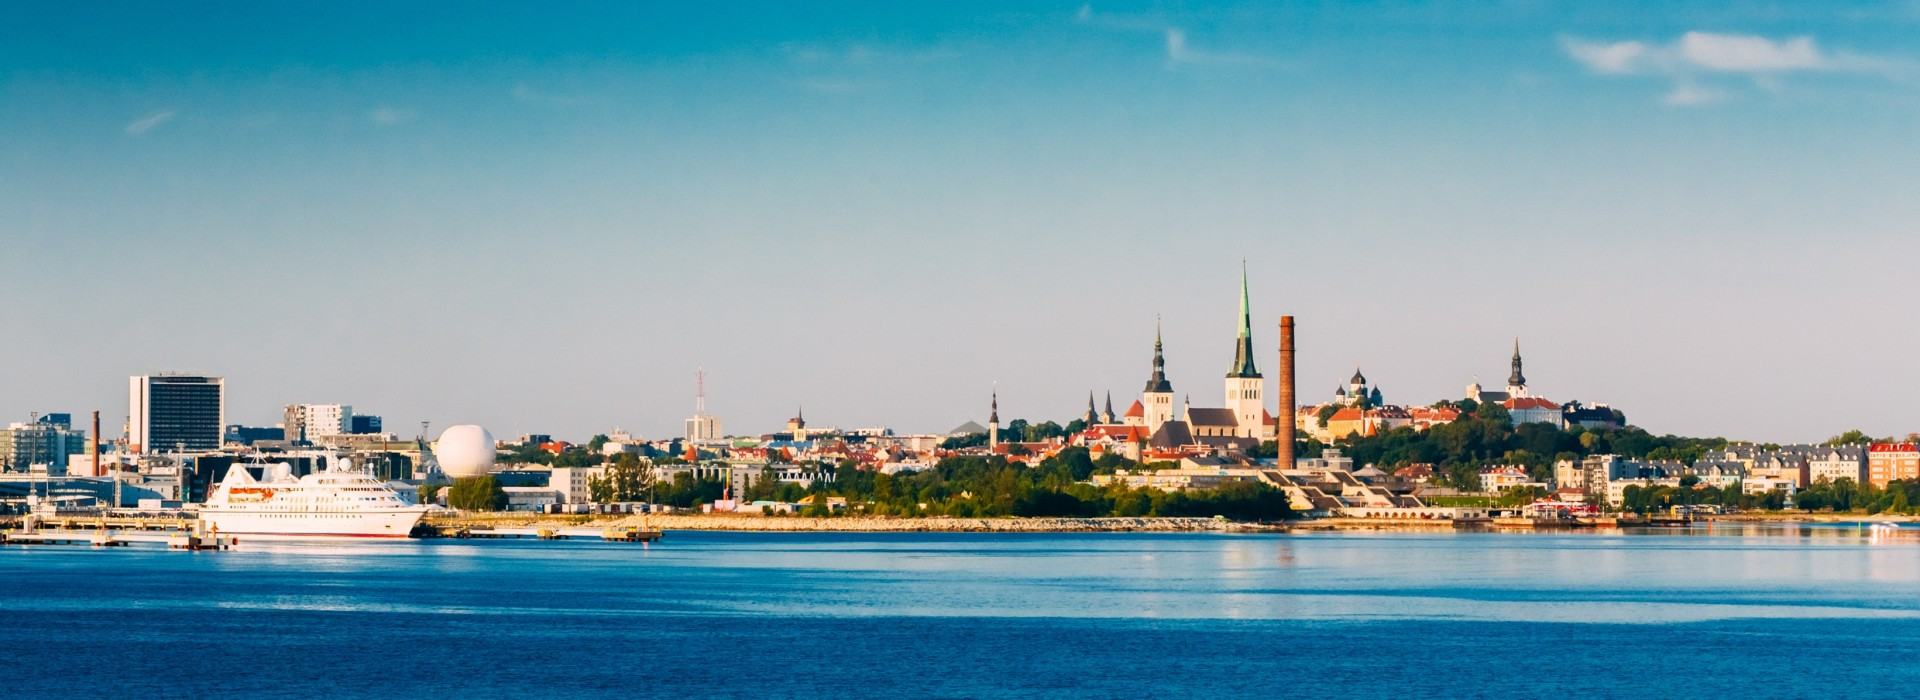 Travelling Estonia - Tours and Holiday Packages in Estonia